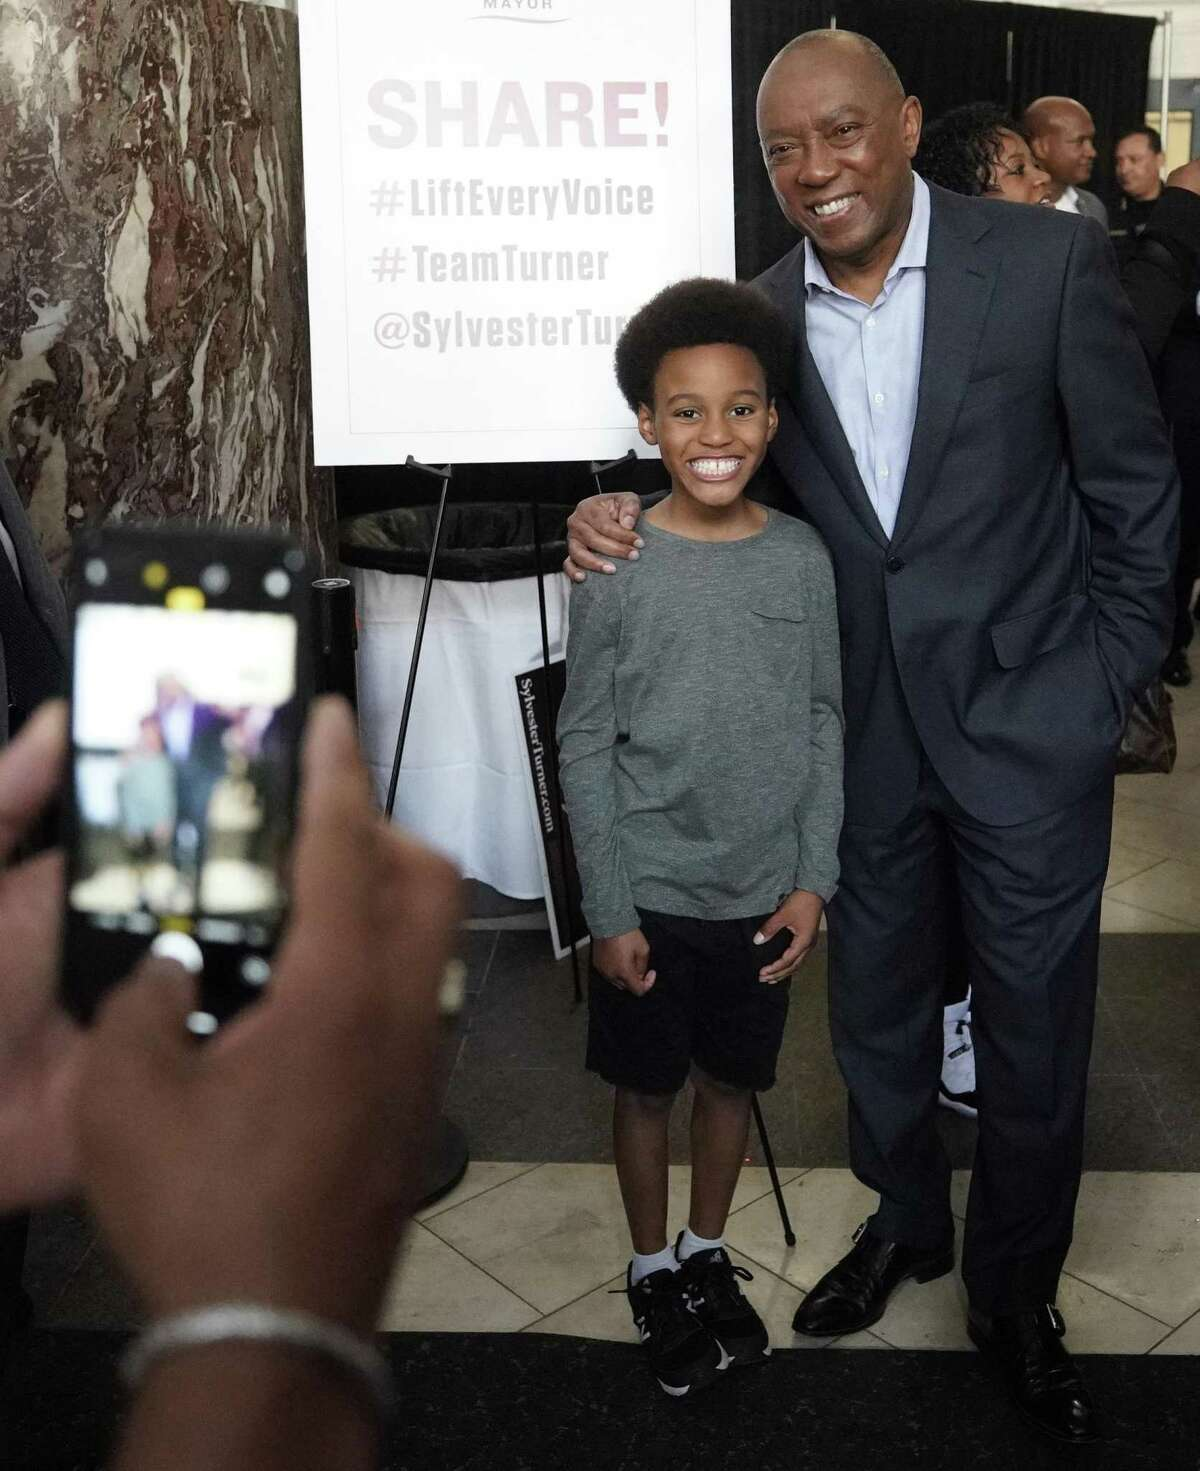 Houston mayor Sylvester Turner poses with Paul Cannings III, 9, as he greets supporters during his kick off mayoral re-election campaign event held at Union Station in Minute Maid Park Saturday, March 30, 2019, in Houston.